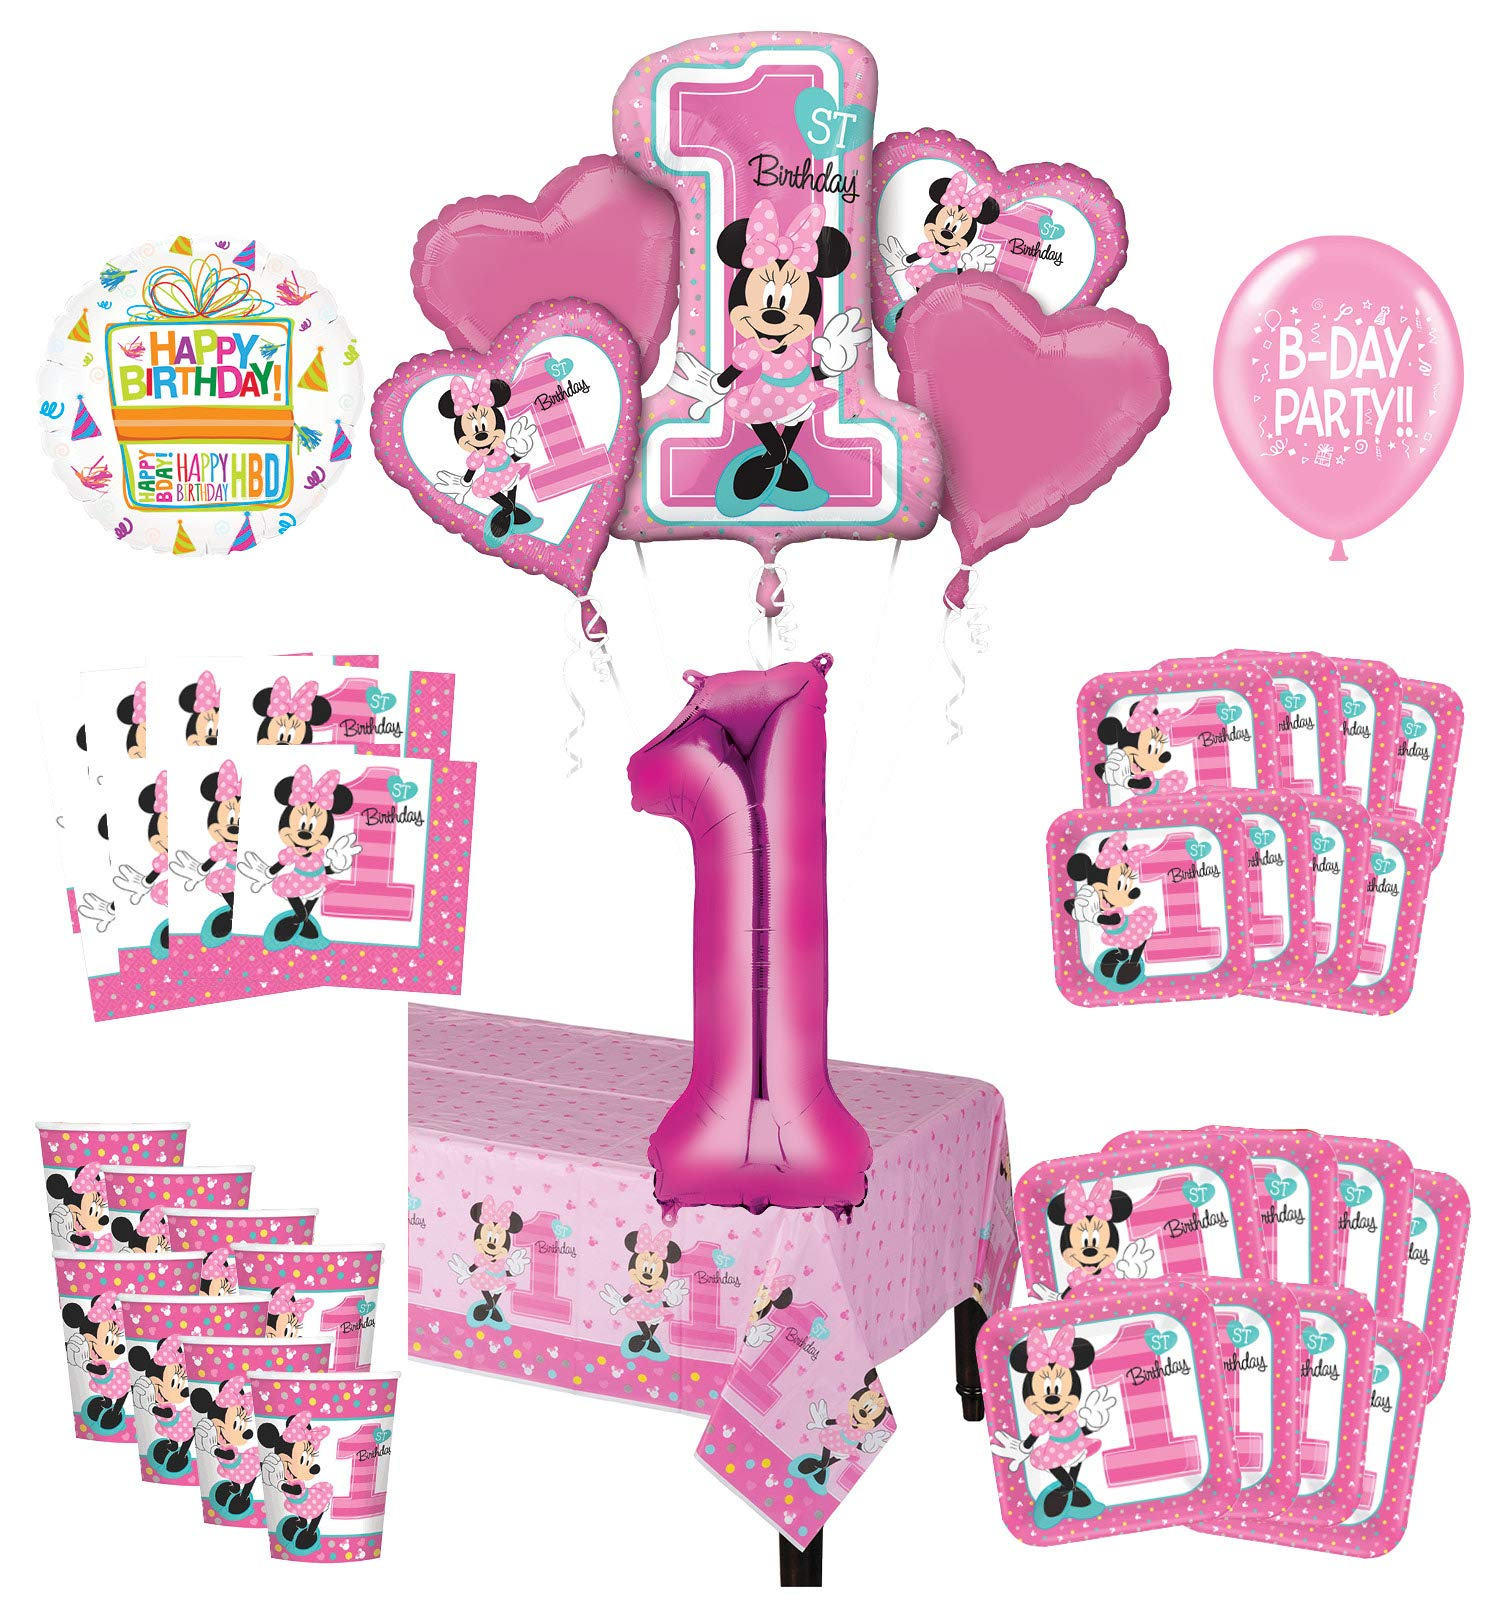 Mayflower Products Minnie Mouse 1st Birthday Party Supplies 16 Guest Decoration Kit and Balloon Bouquet